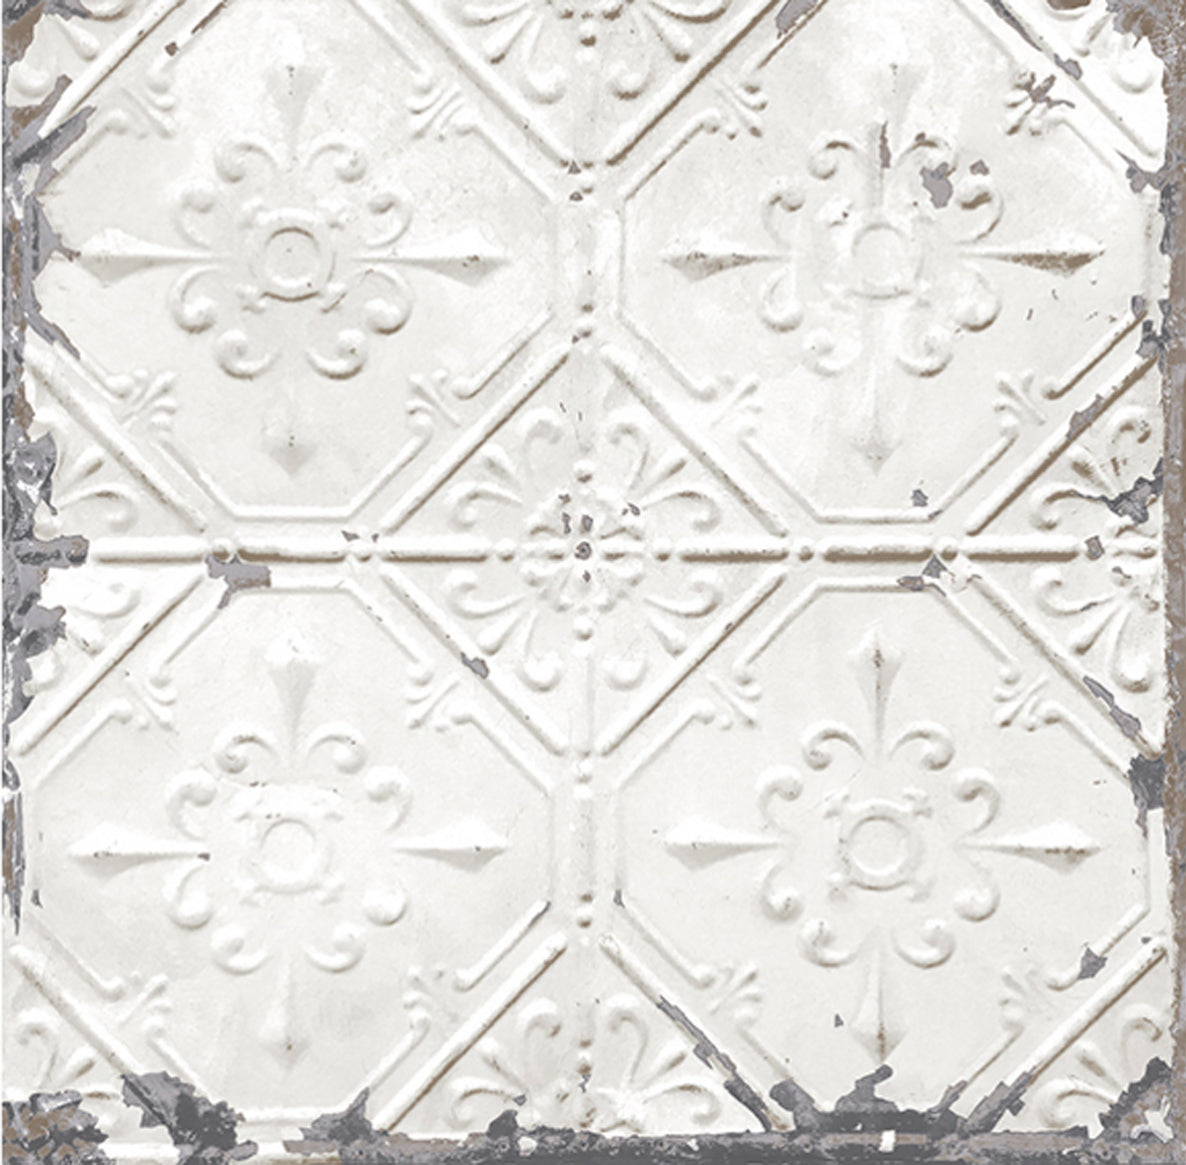 Chelsea tin tile effect wallpaper white metallic silver your 4 walls - American tin tiles wallpaper ...